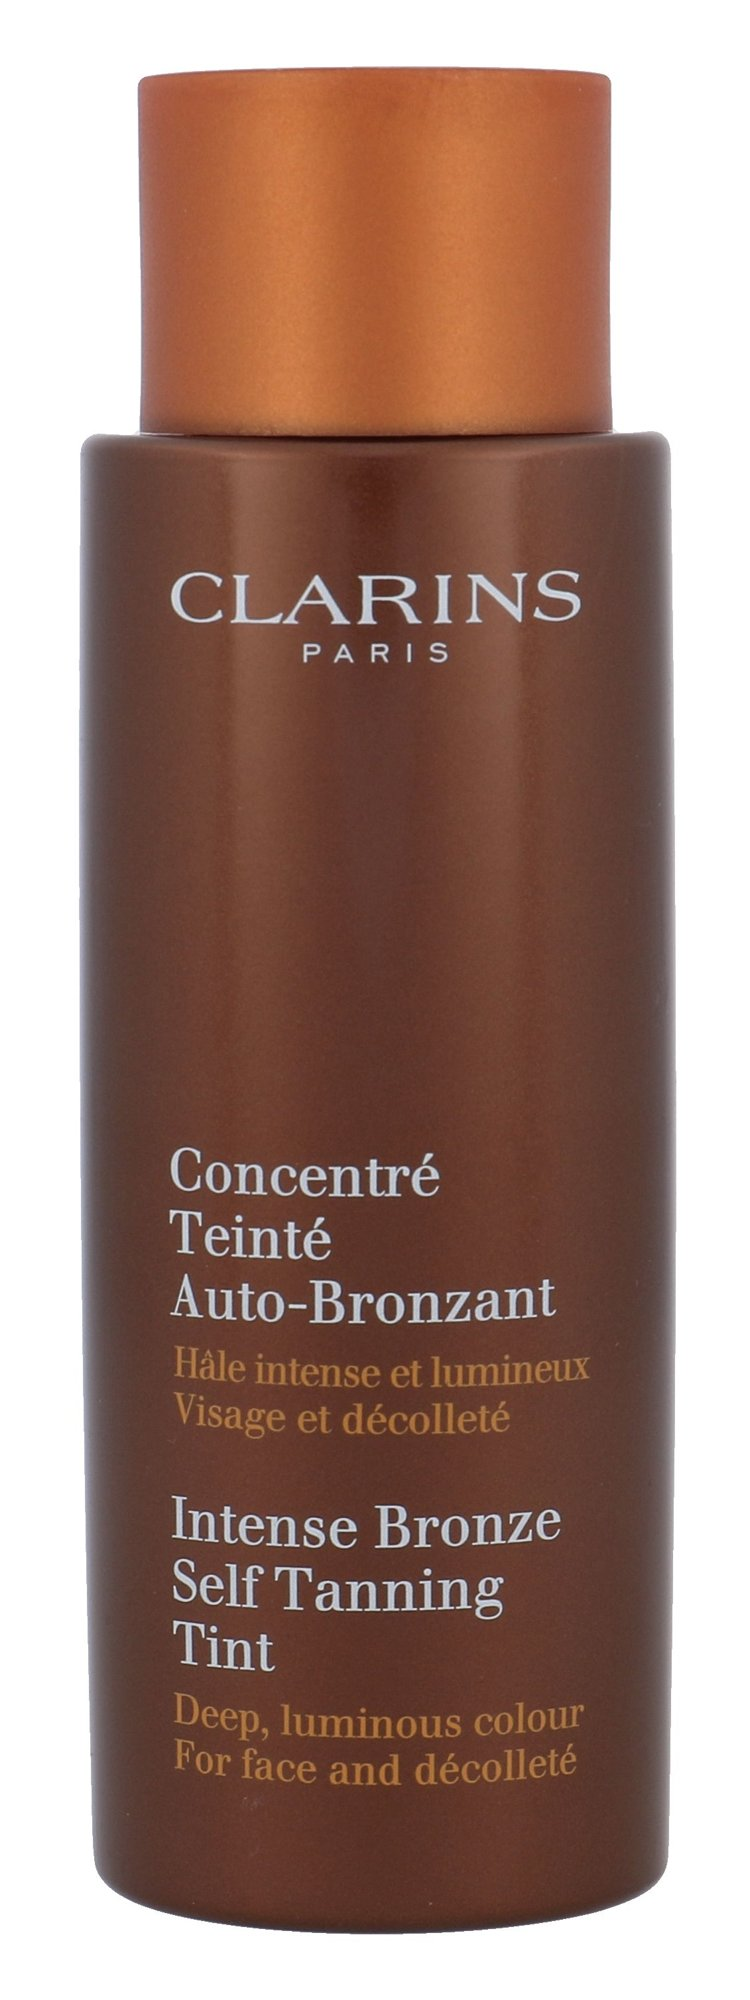 Clarins Intense Bronze Cosmetic 125ml